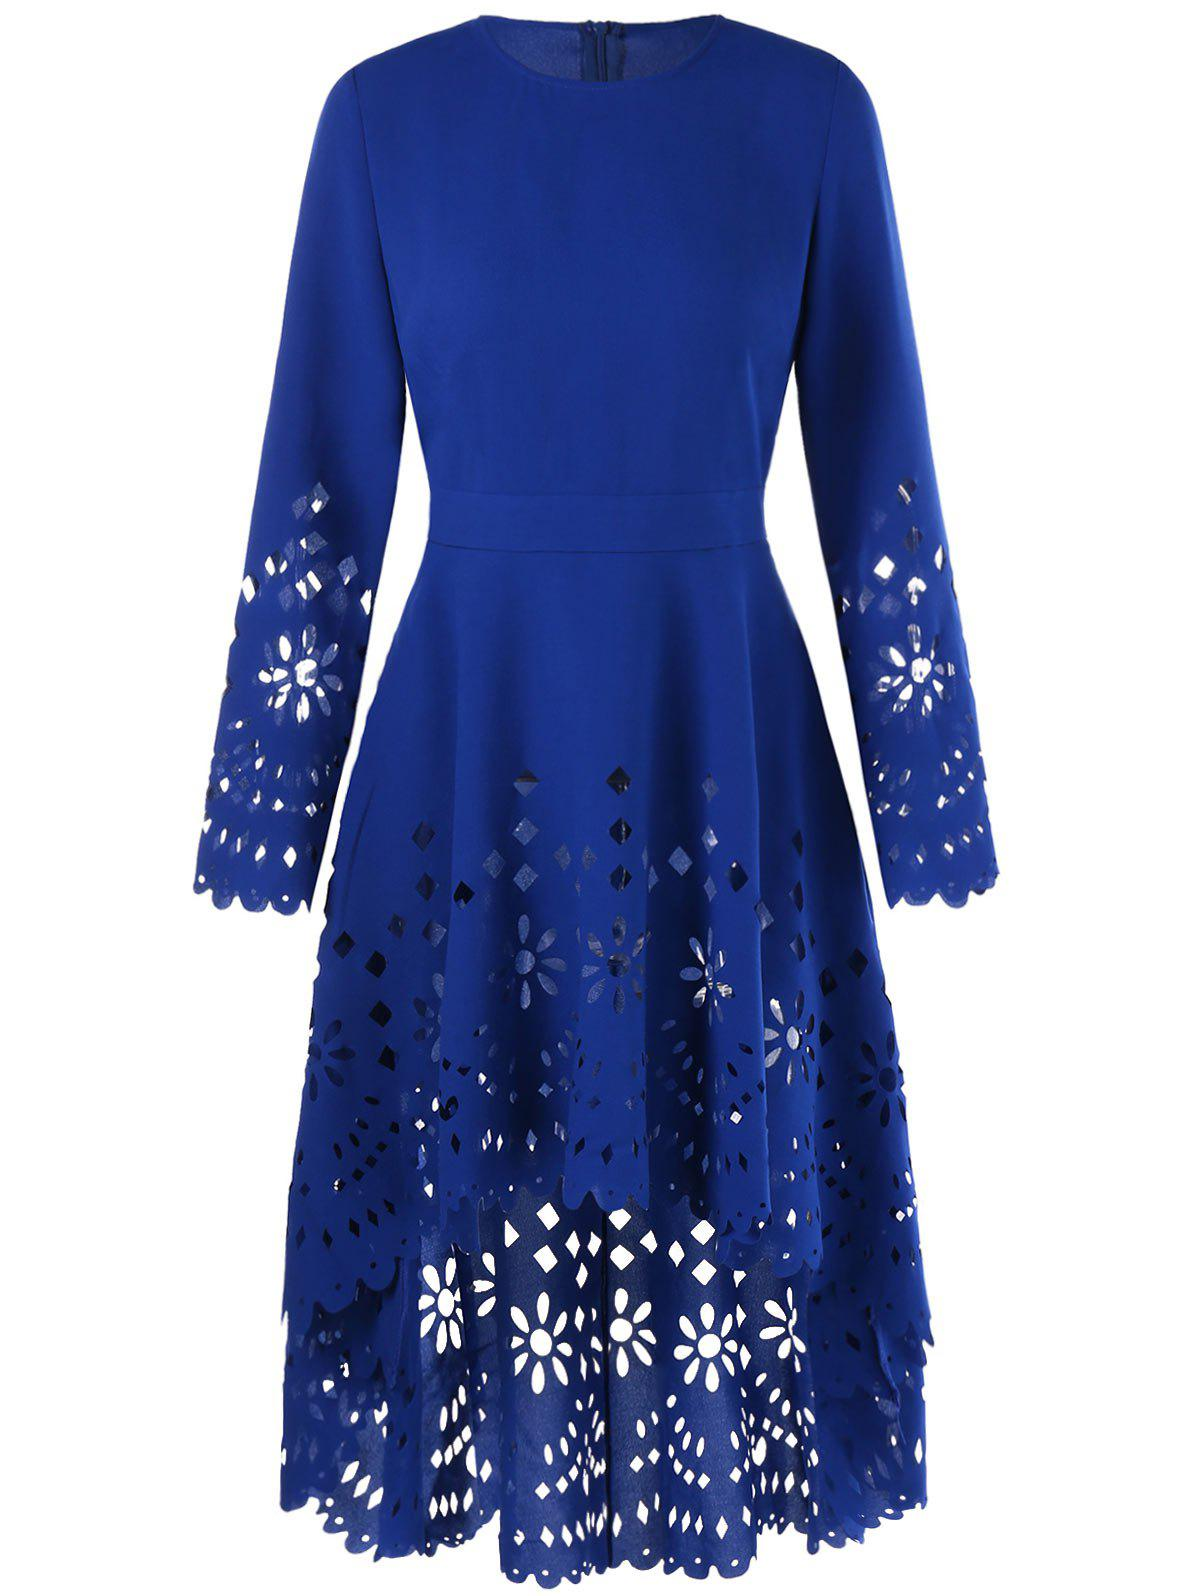 Openwork High Low Flowy Long Top - BLUE L